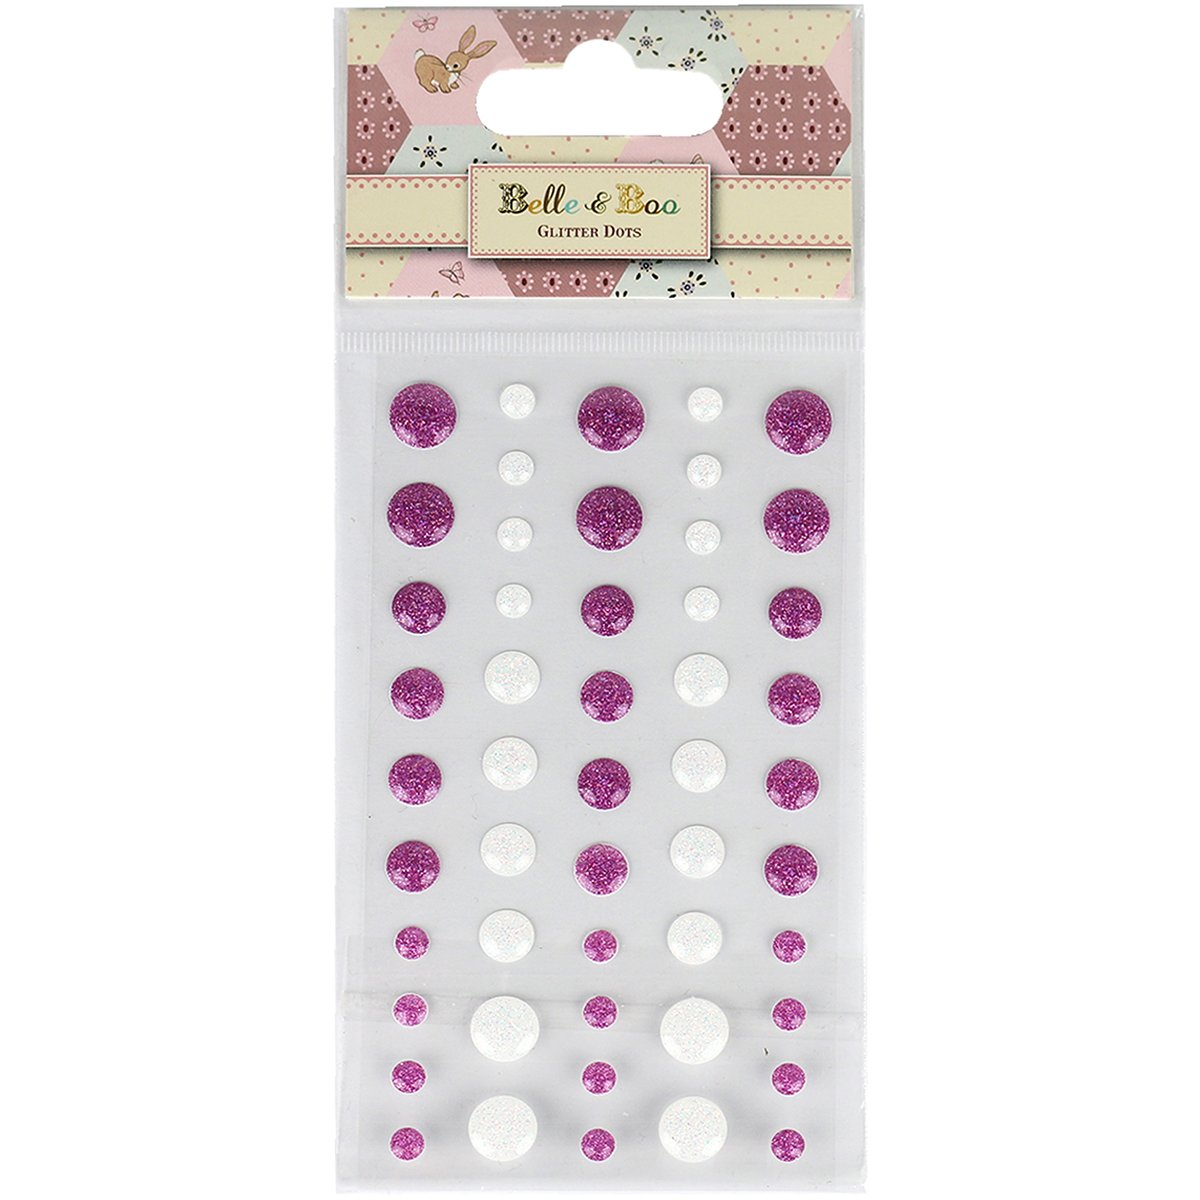 Trimcraft Belle & Boo II Adhesive Enamel Dots